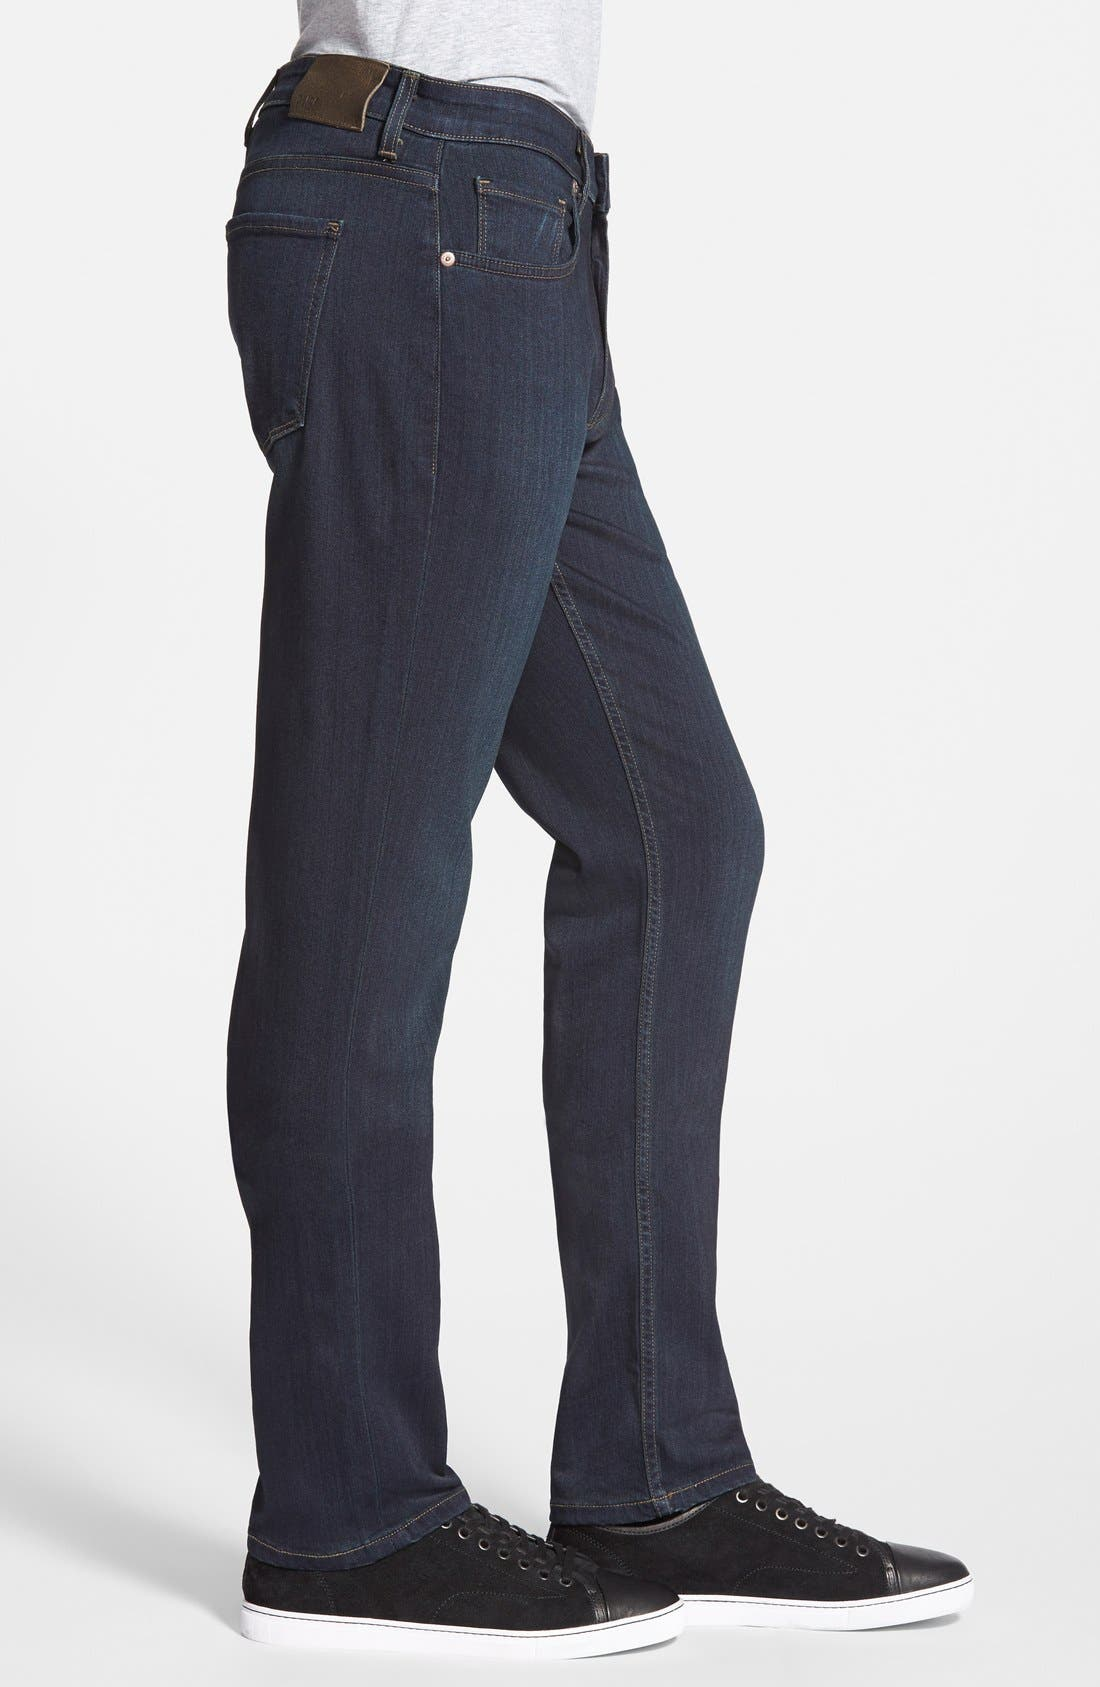 Transcend - Federal XL Slim Straight Leg Jeans,                             Alternate thumbnail 3, color,                             CELLAR/ CELLAR